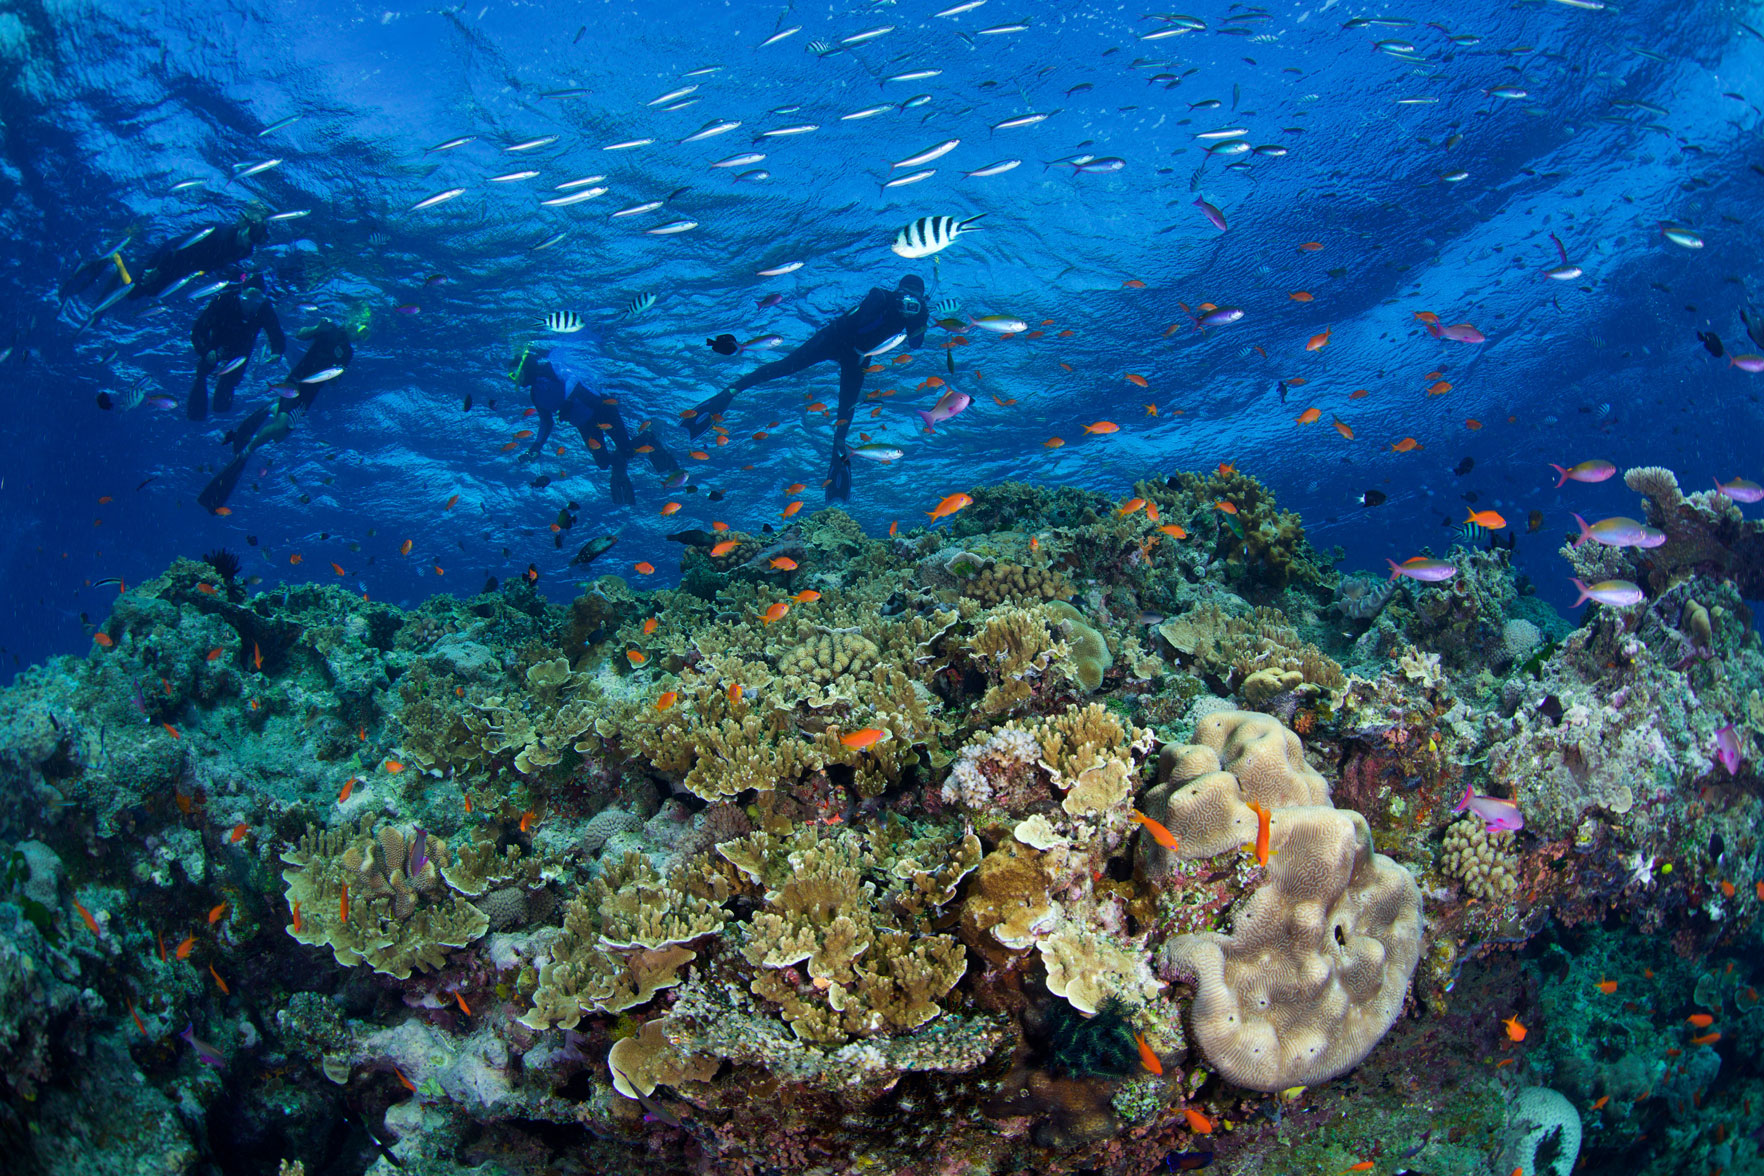 AUS_Great-Barrier-Reef-UW-Pixie-Pinnacle-©15-Thomas-Baechtold-1192.jpg